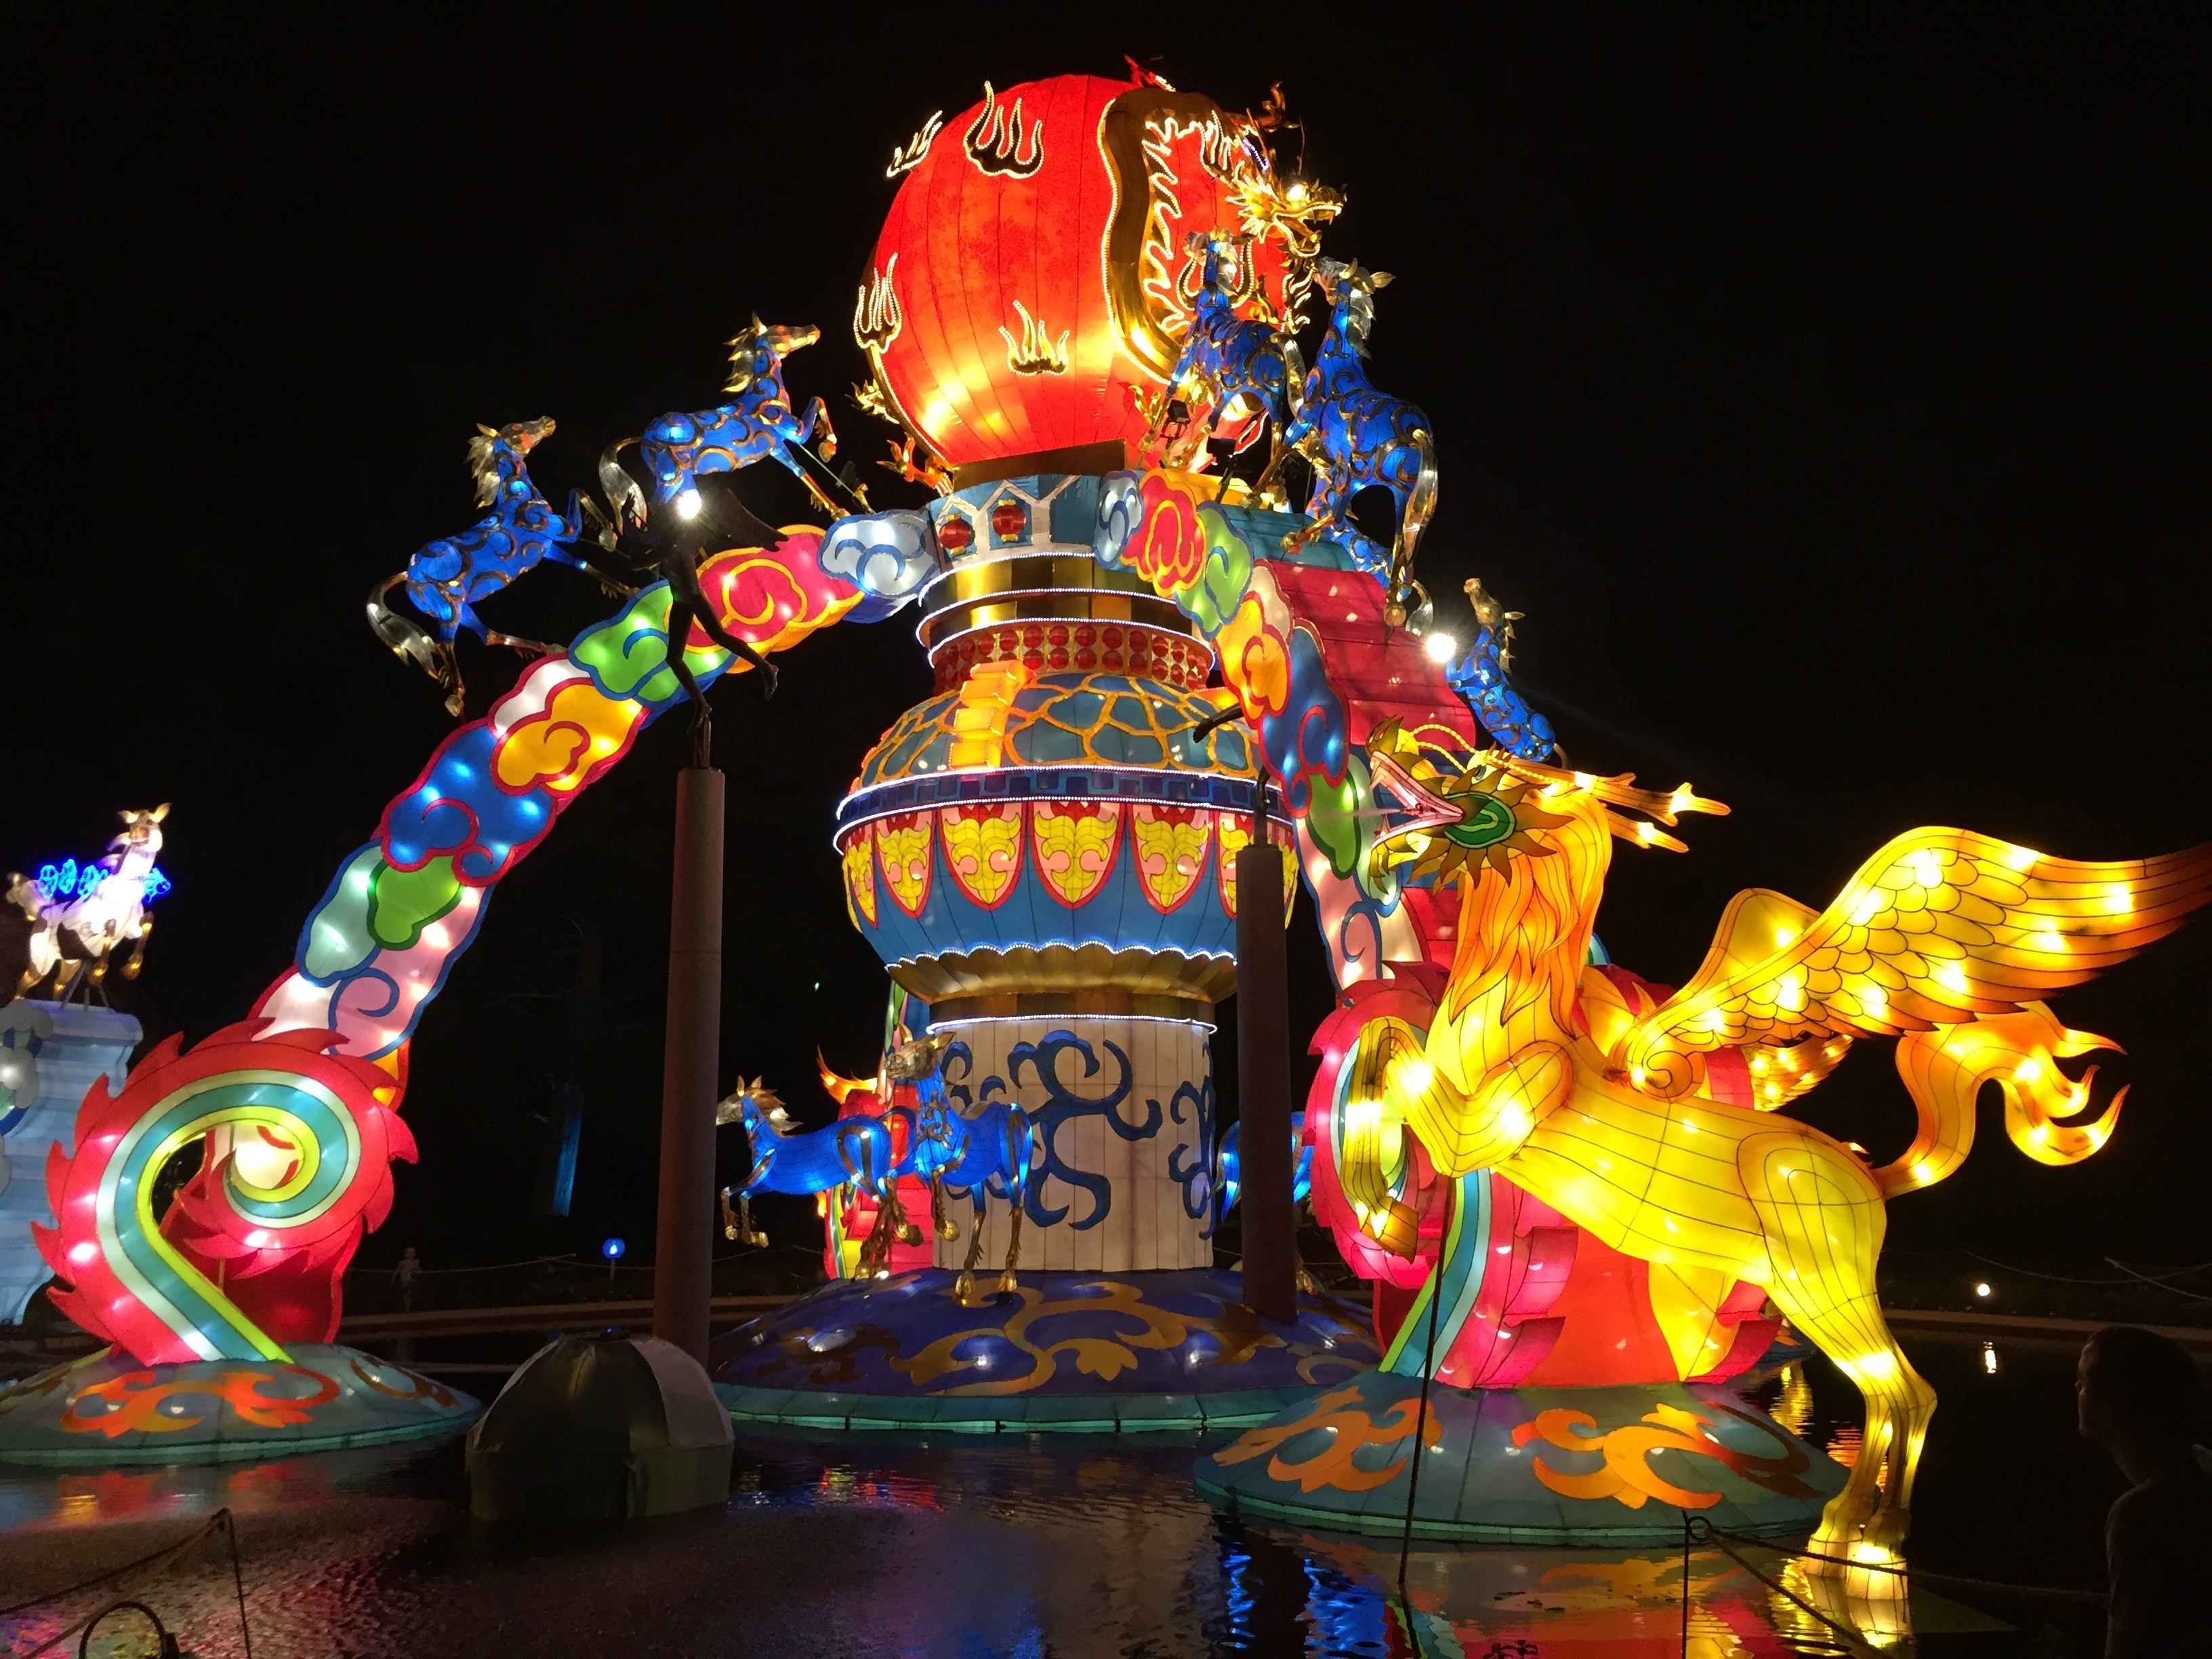 Most Current Free Images : Outdoor, Celebration, Golden, Red, Amusement Park For Outdoor Oriental Lanterns (View 19 of 20)